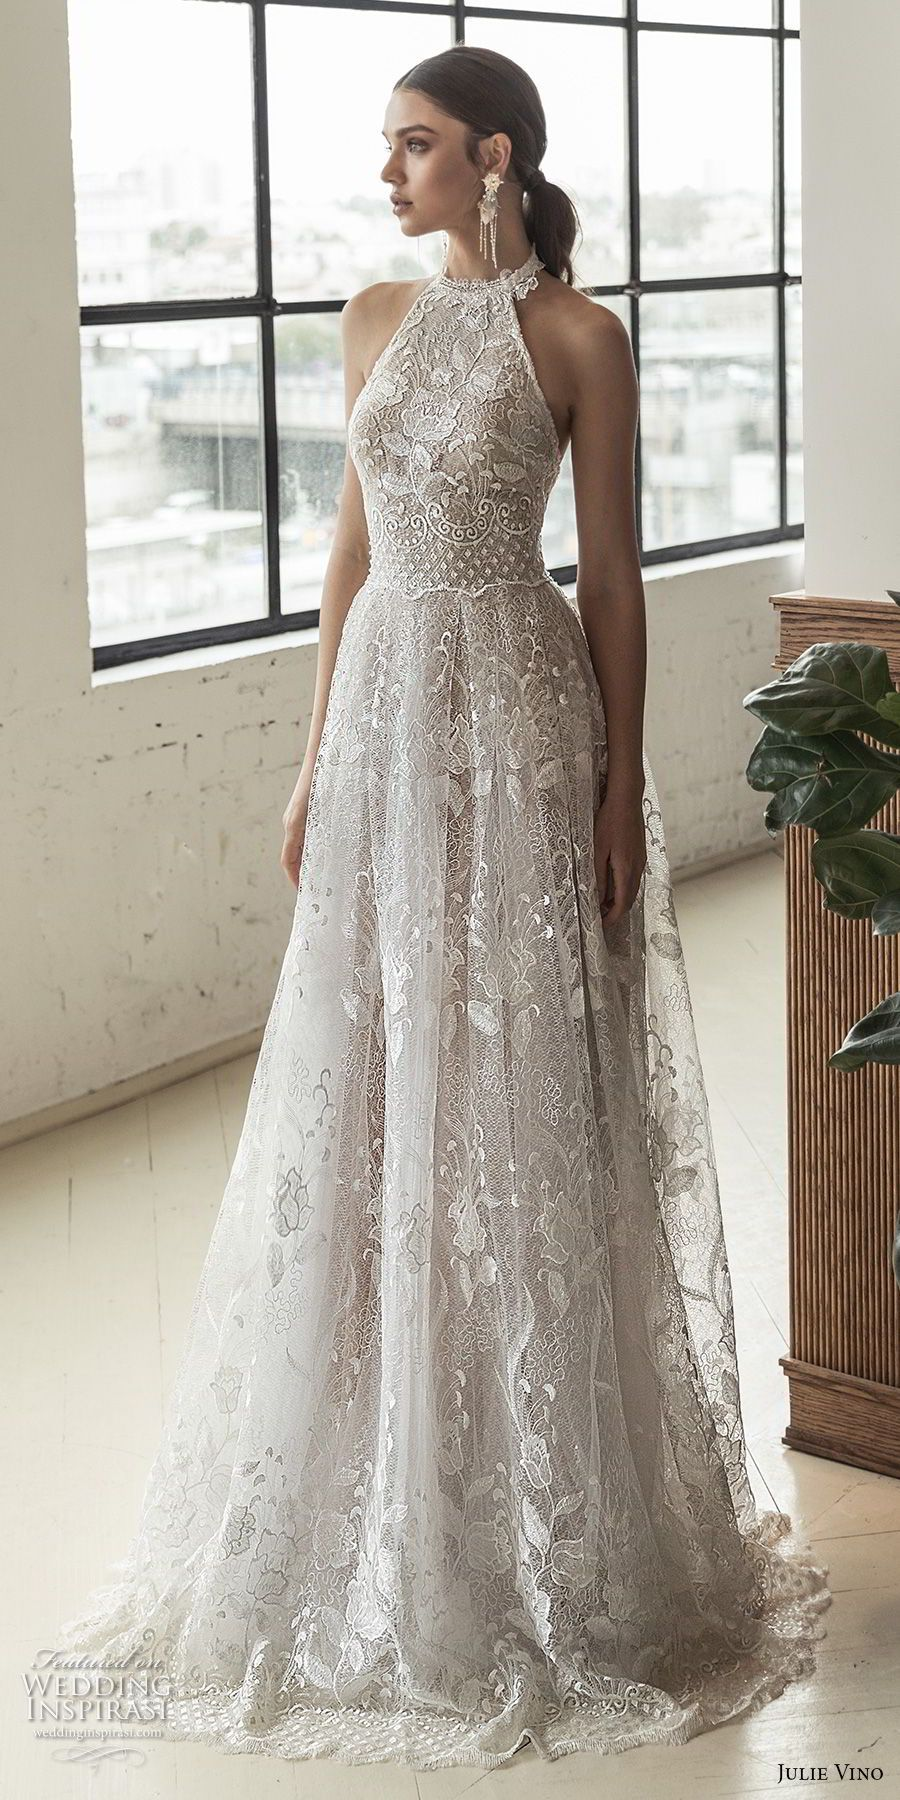 a328a2a1c135d julie vino 2019 romanzo bridal sleeveless halter jewel neck full  embellishment romantic a line wedding dress open back sweep train (4) mv --  Romanzo by ...